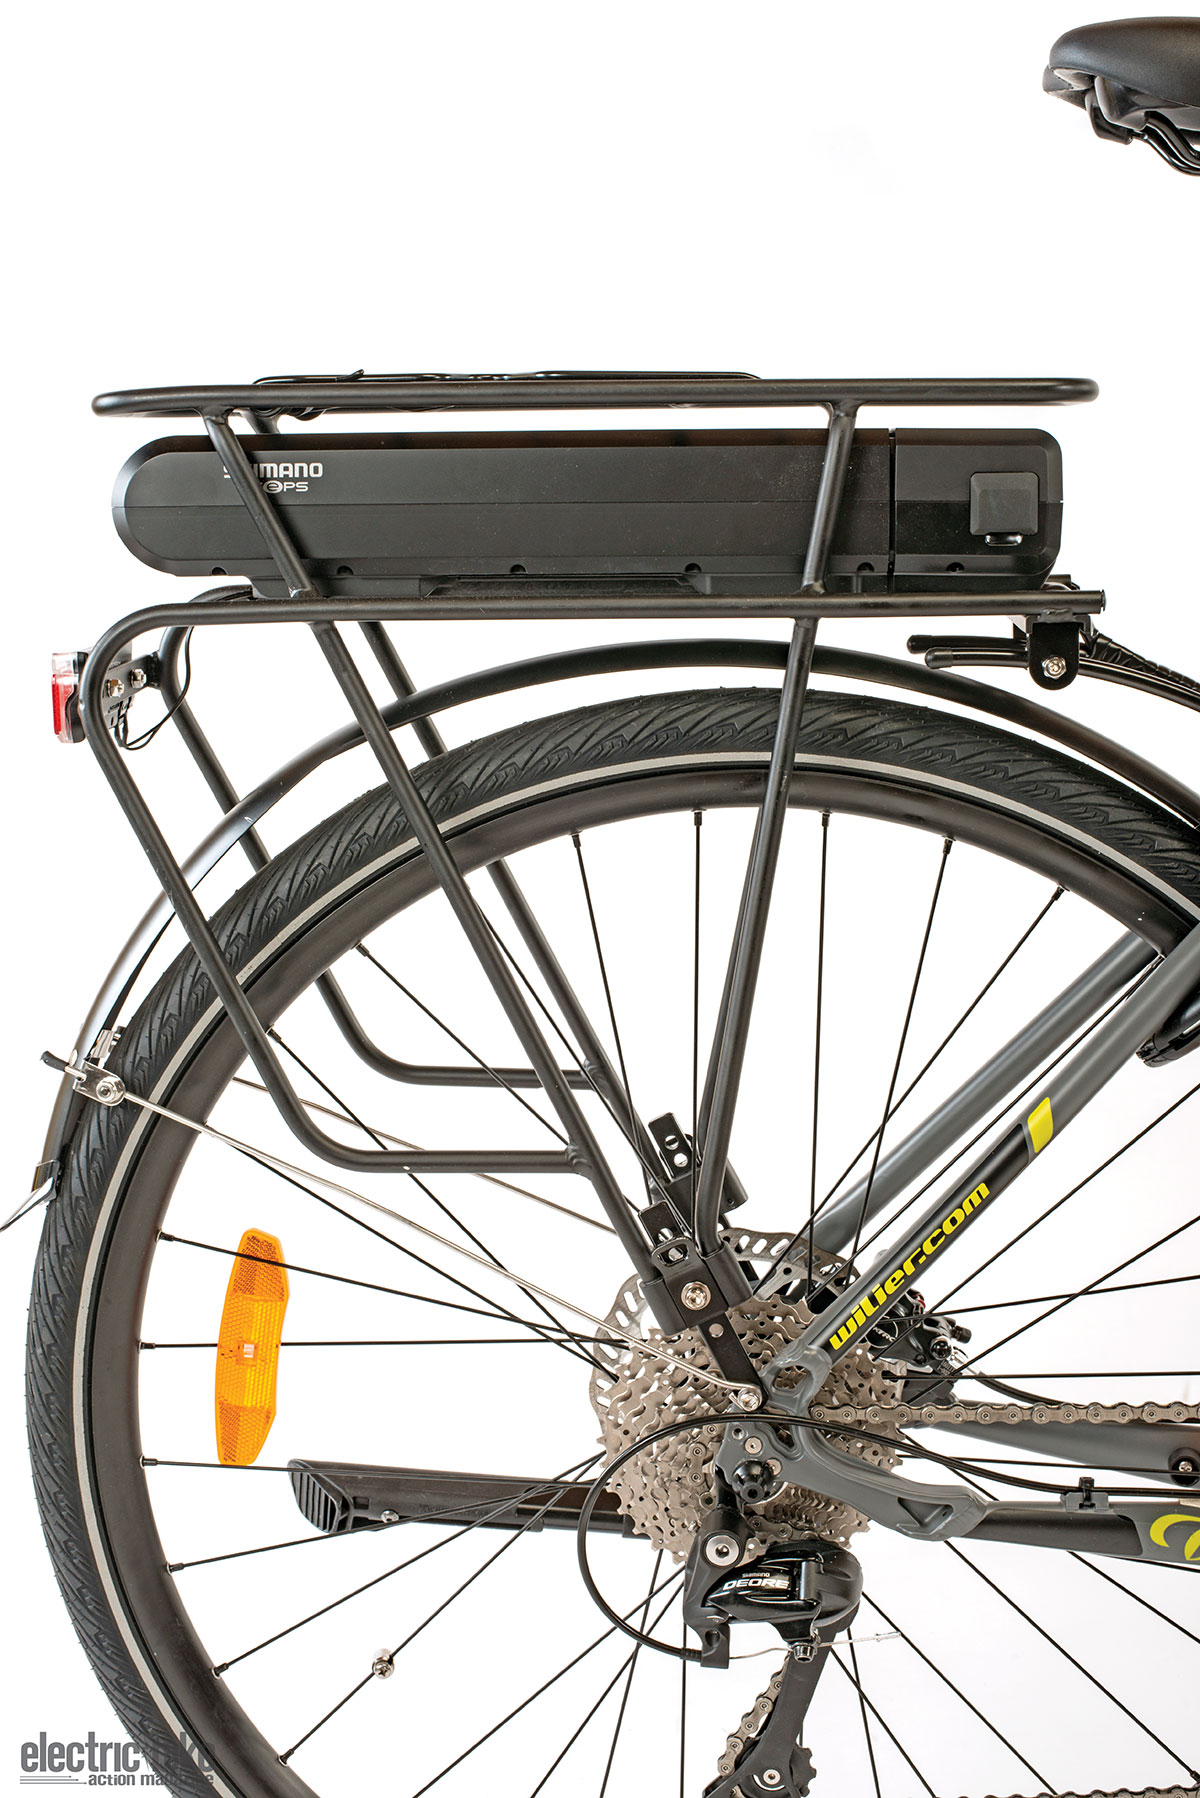 The rear rack of the bike is a great thing to have. The battery makes the back end heavy, but with a mid-drive motor, it balances it out.